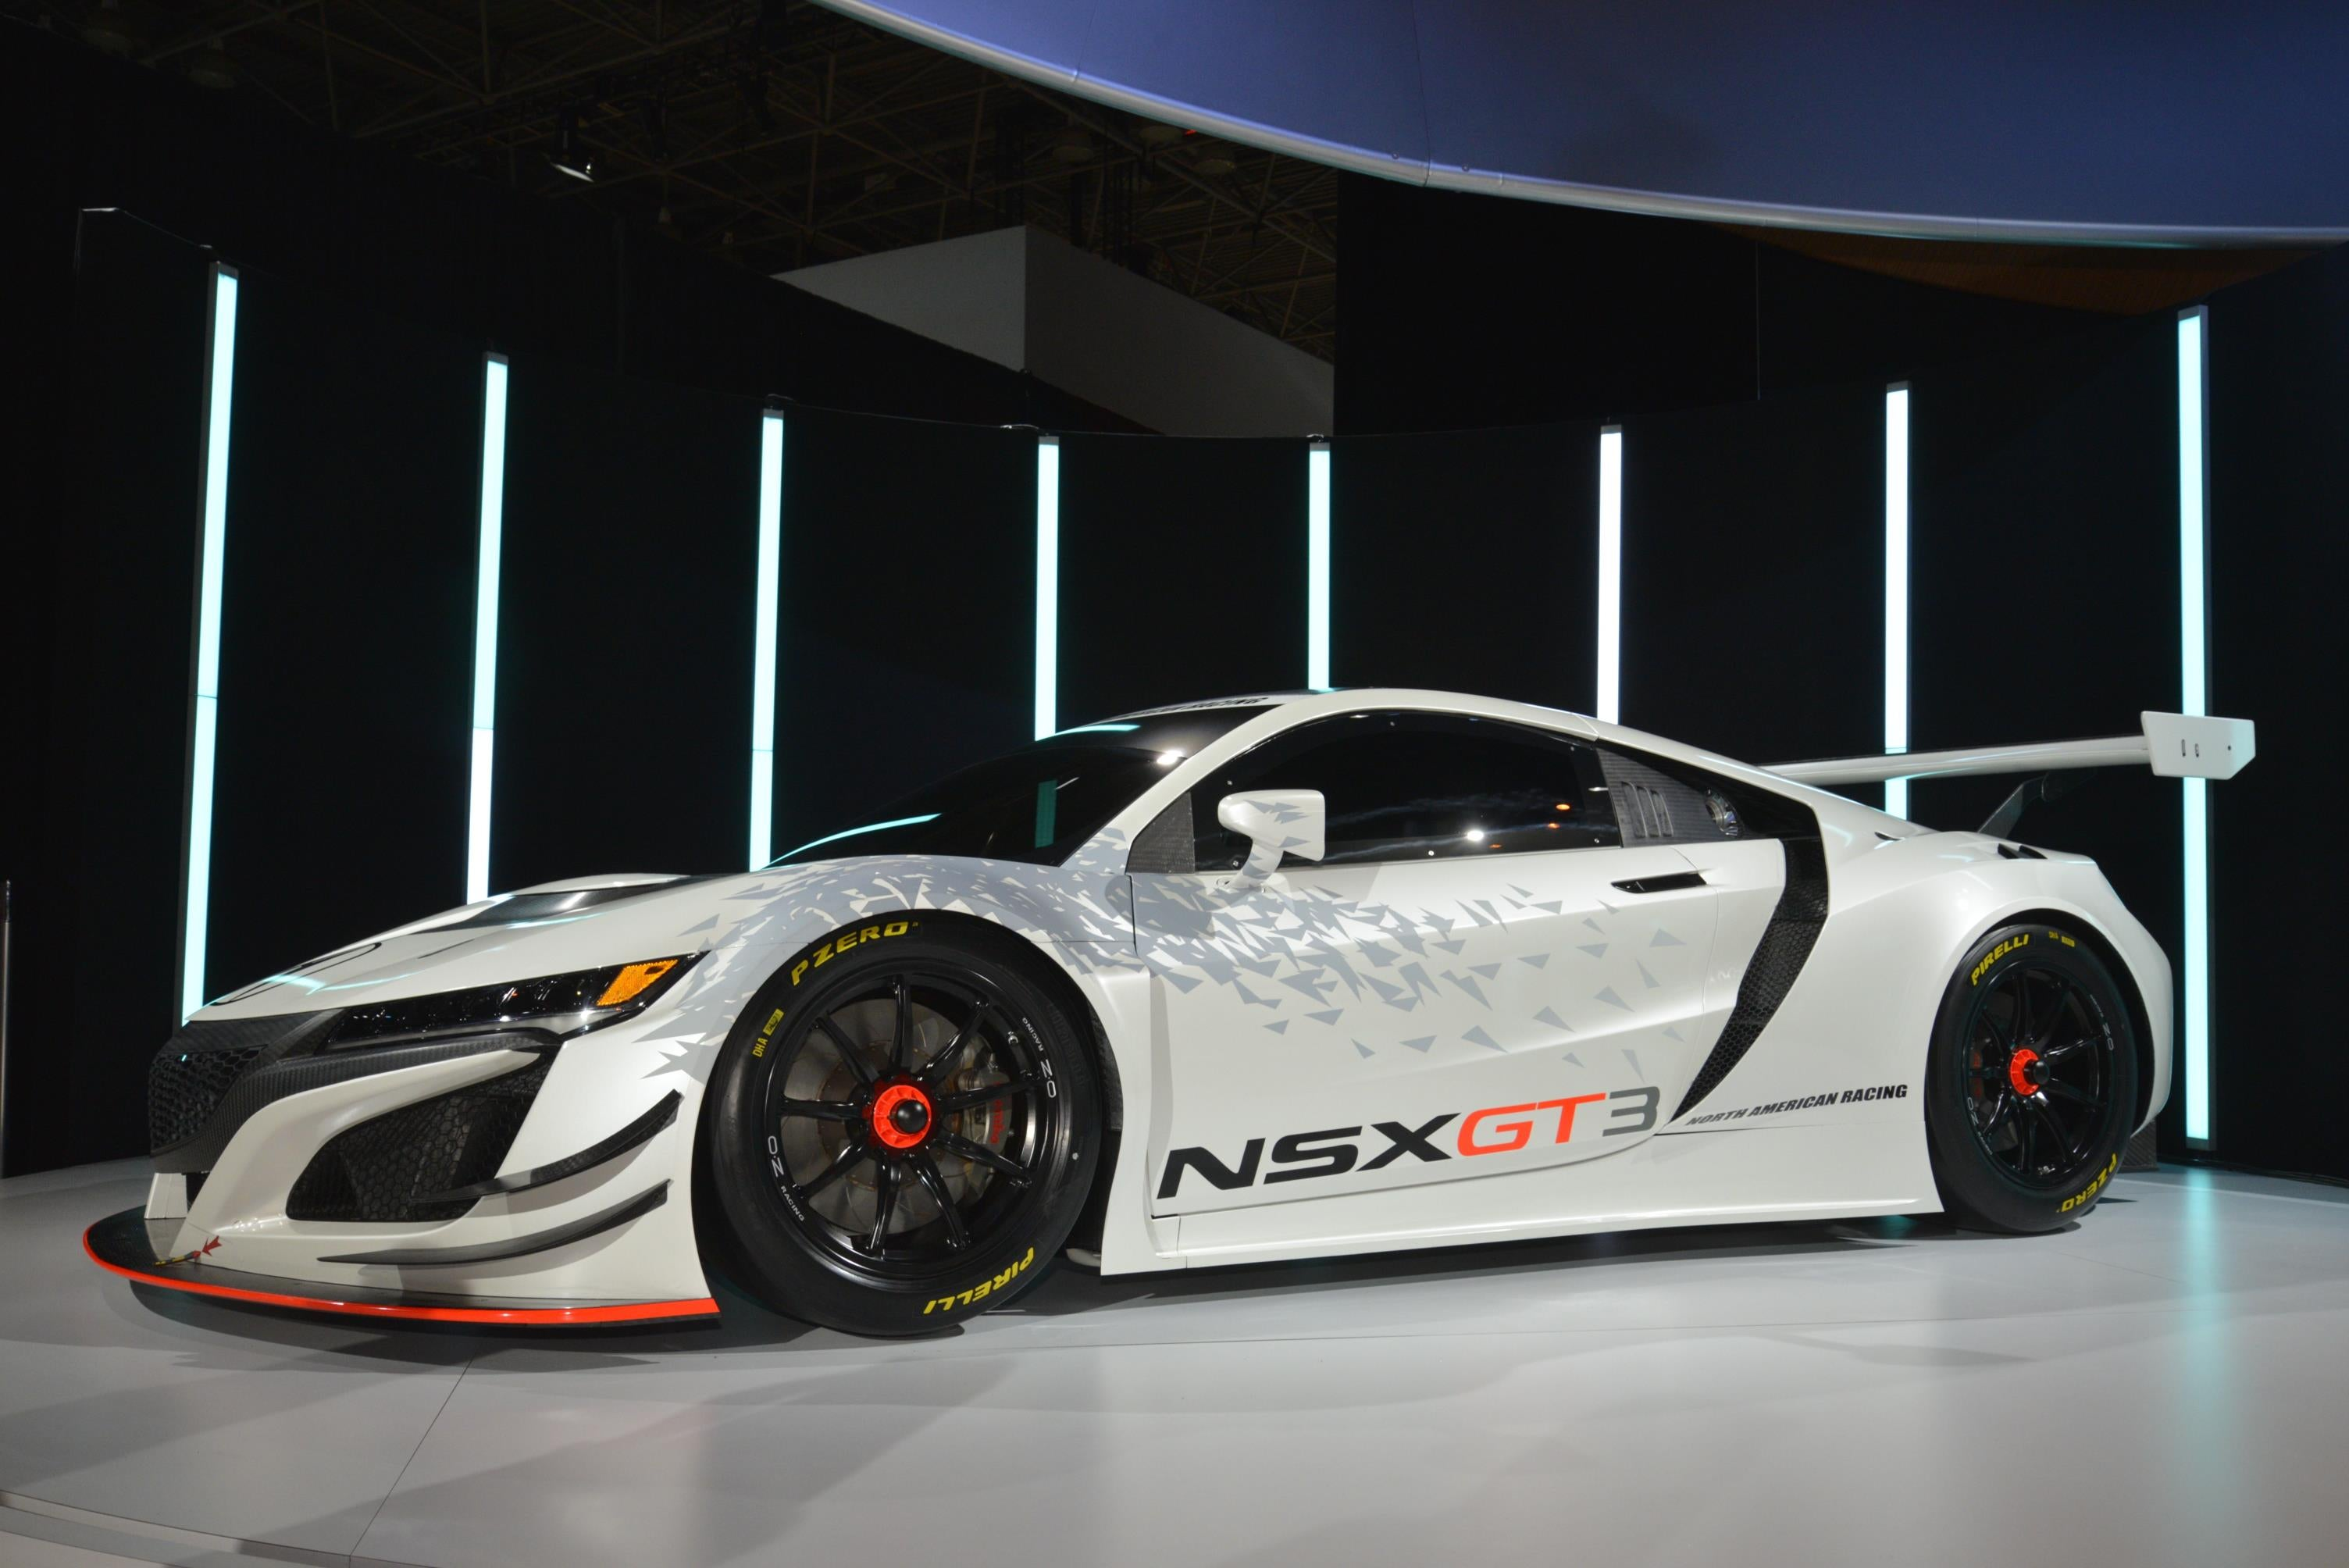 Acura Nsx Gt3 Race Car 3 Photo On Automoblog Net